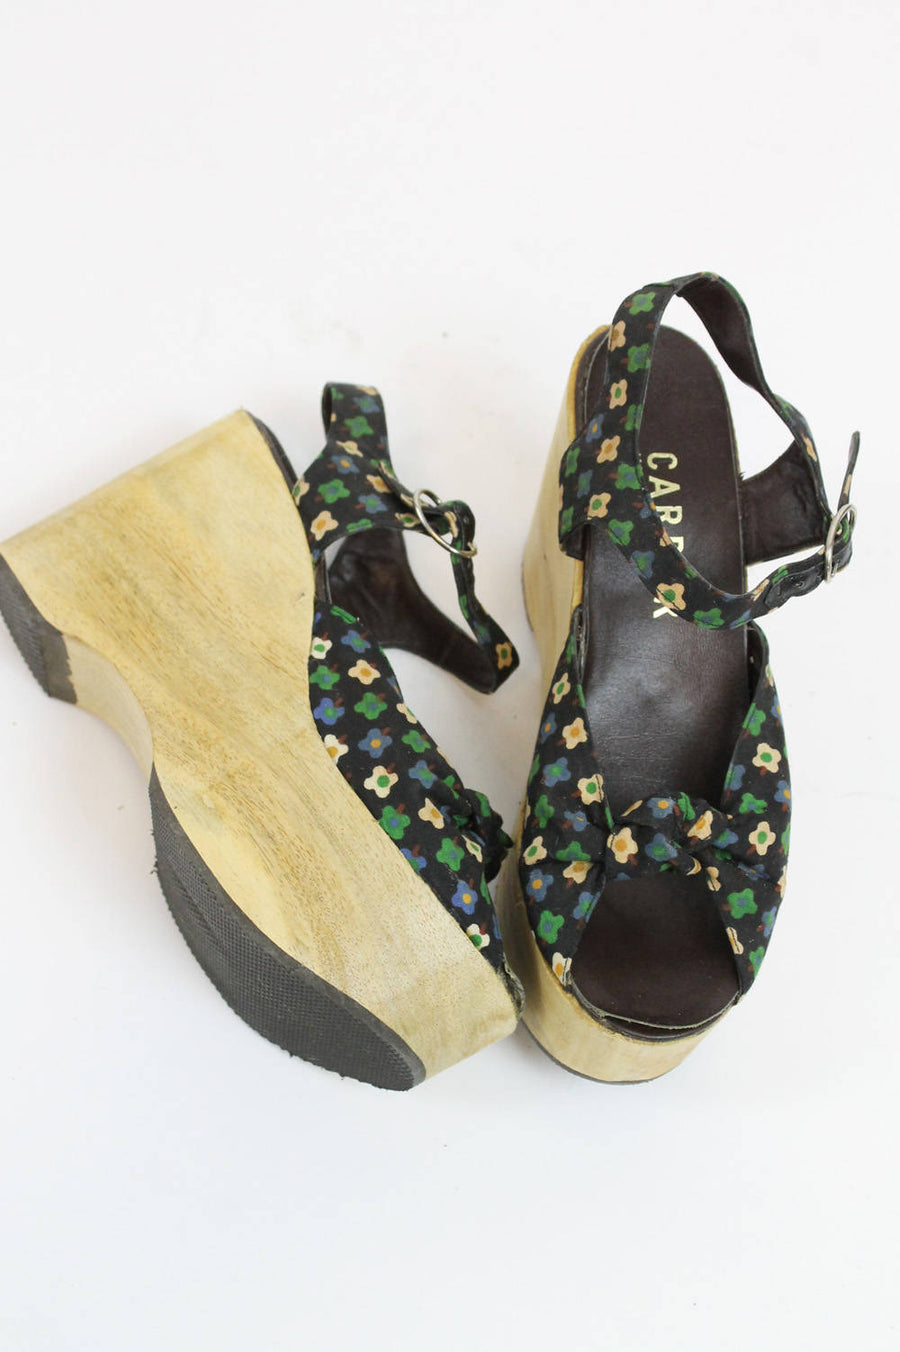 1970s Carber platforms size 7 us | vintage wood wedge shoes